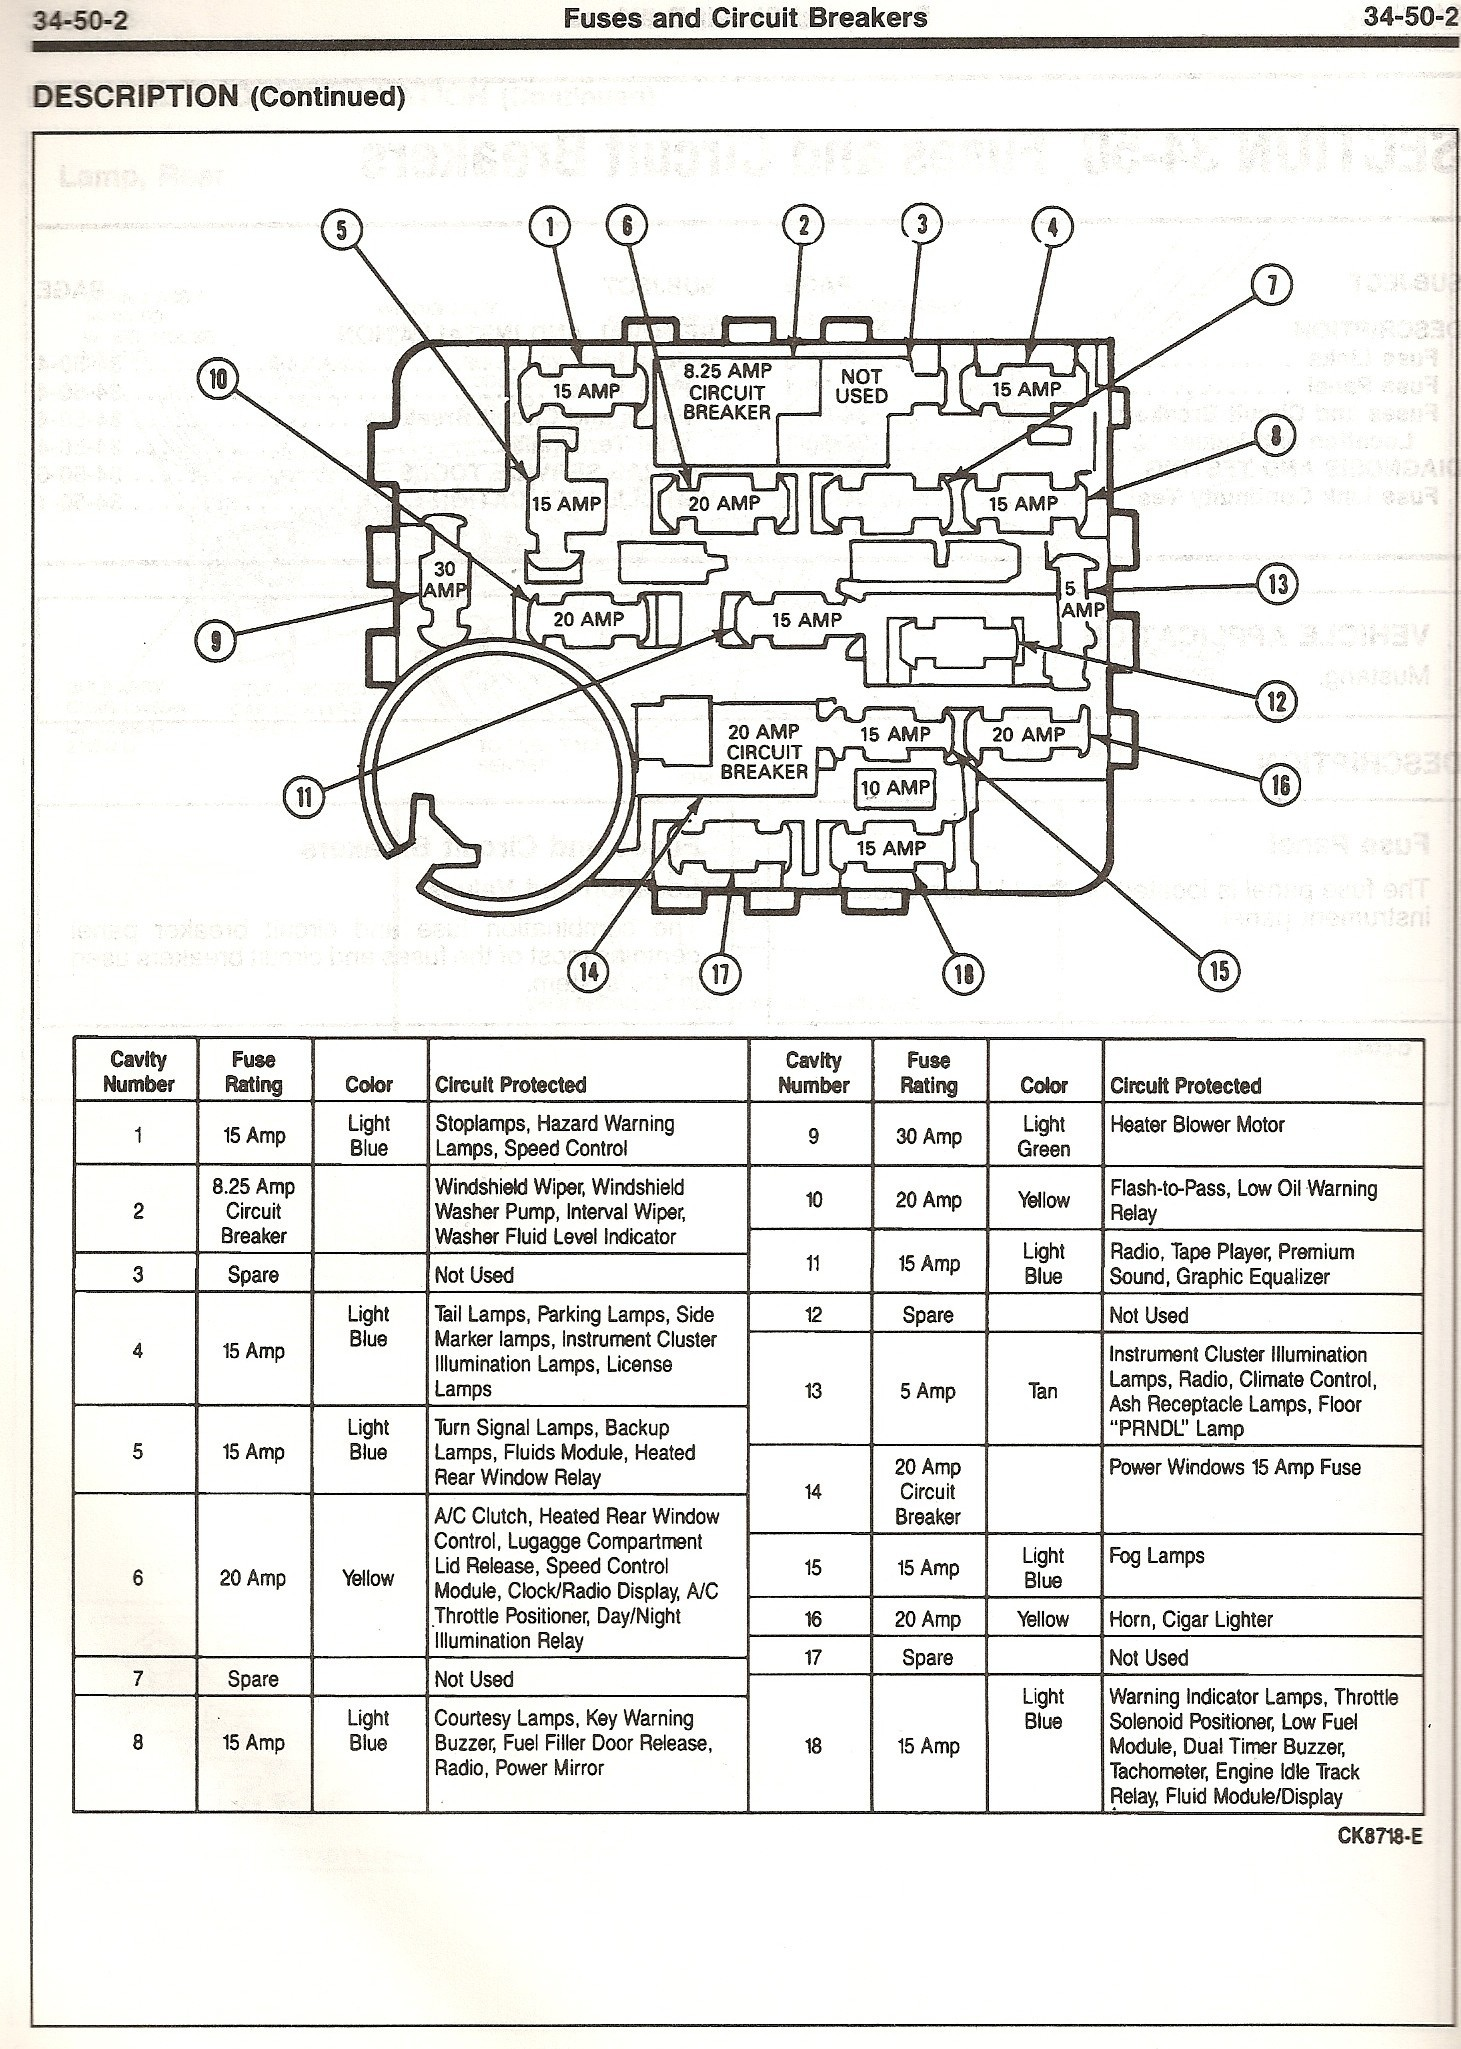 1995 ford Taurus Engine Diagram 2001 ford Ranger Fuse Diagram Wiring Diagram  Of 1995 ford Taurus